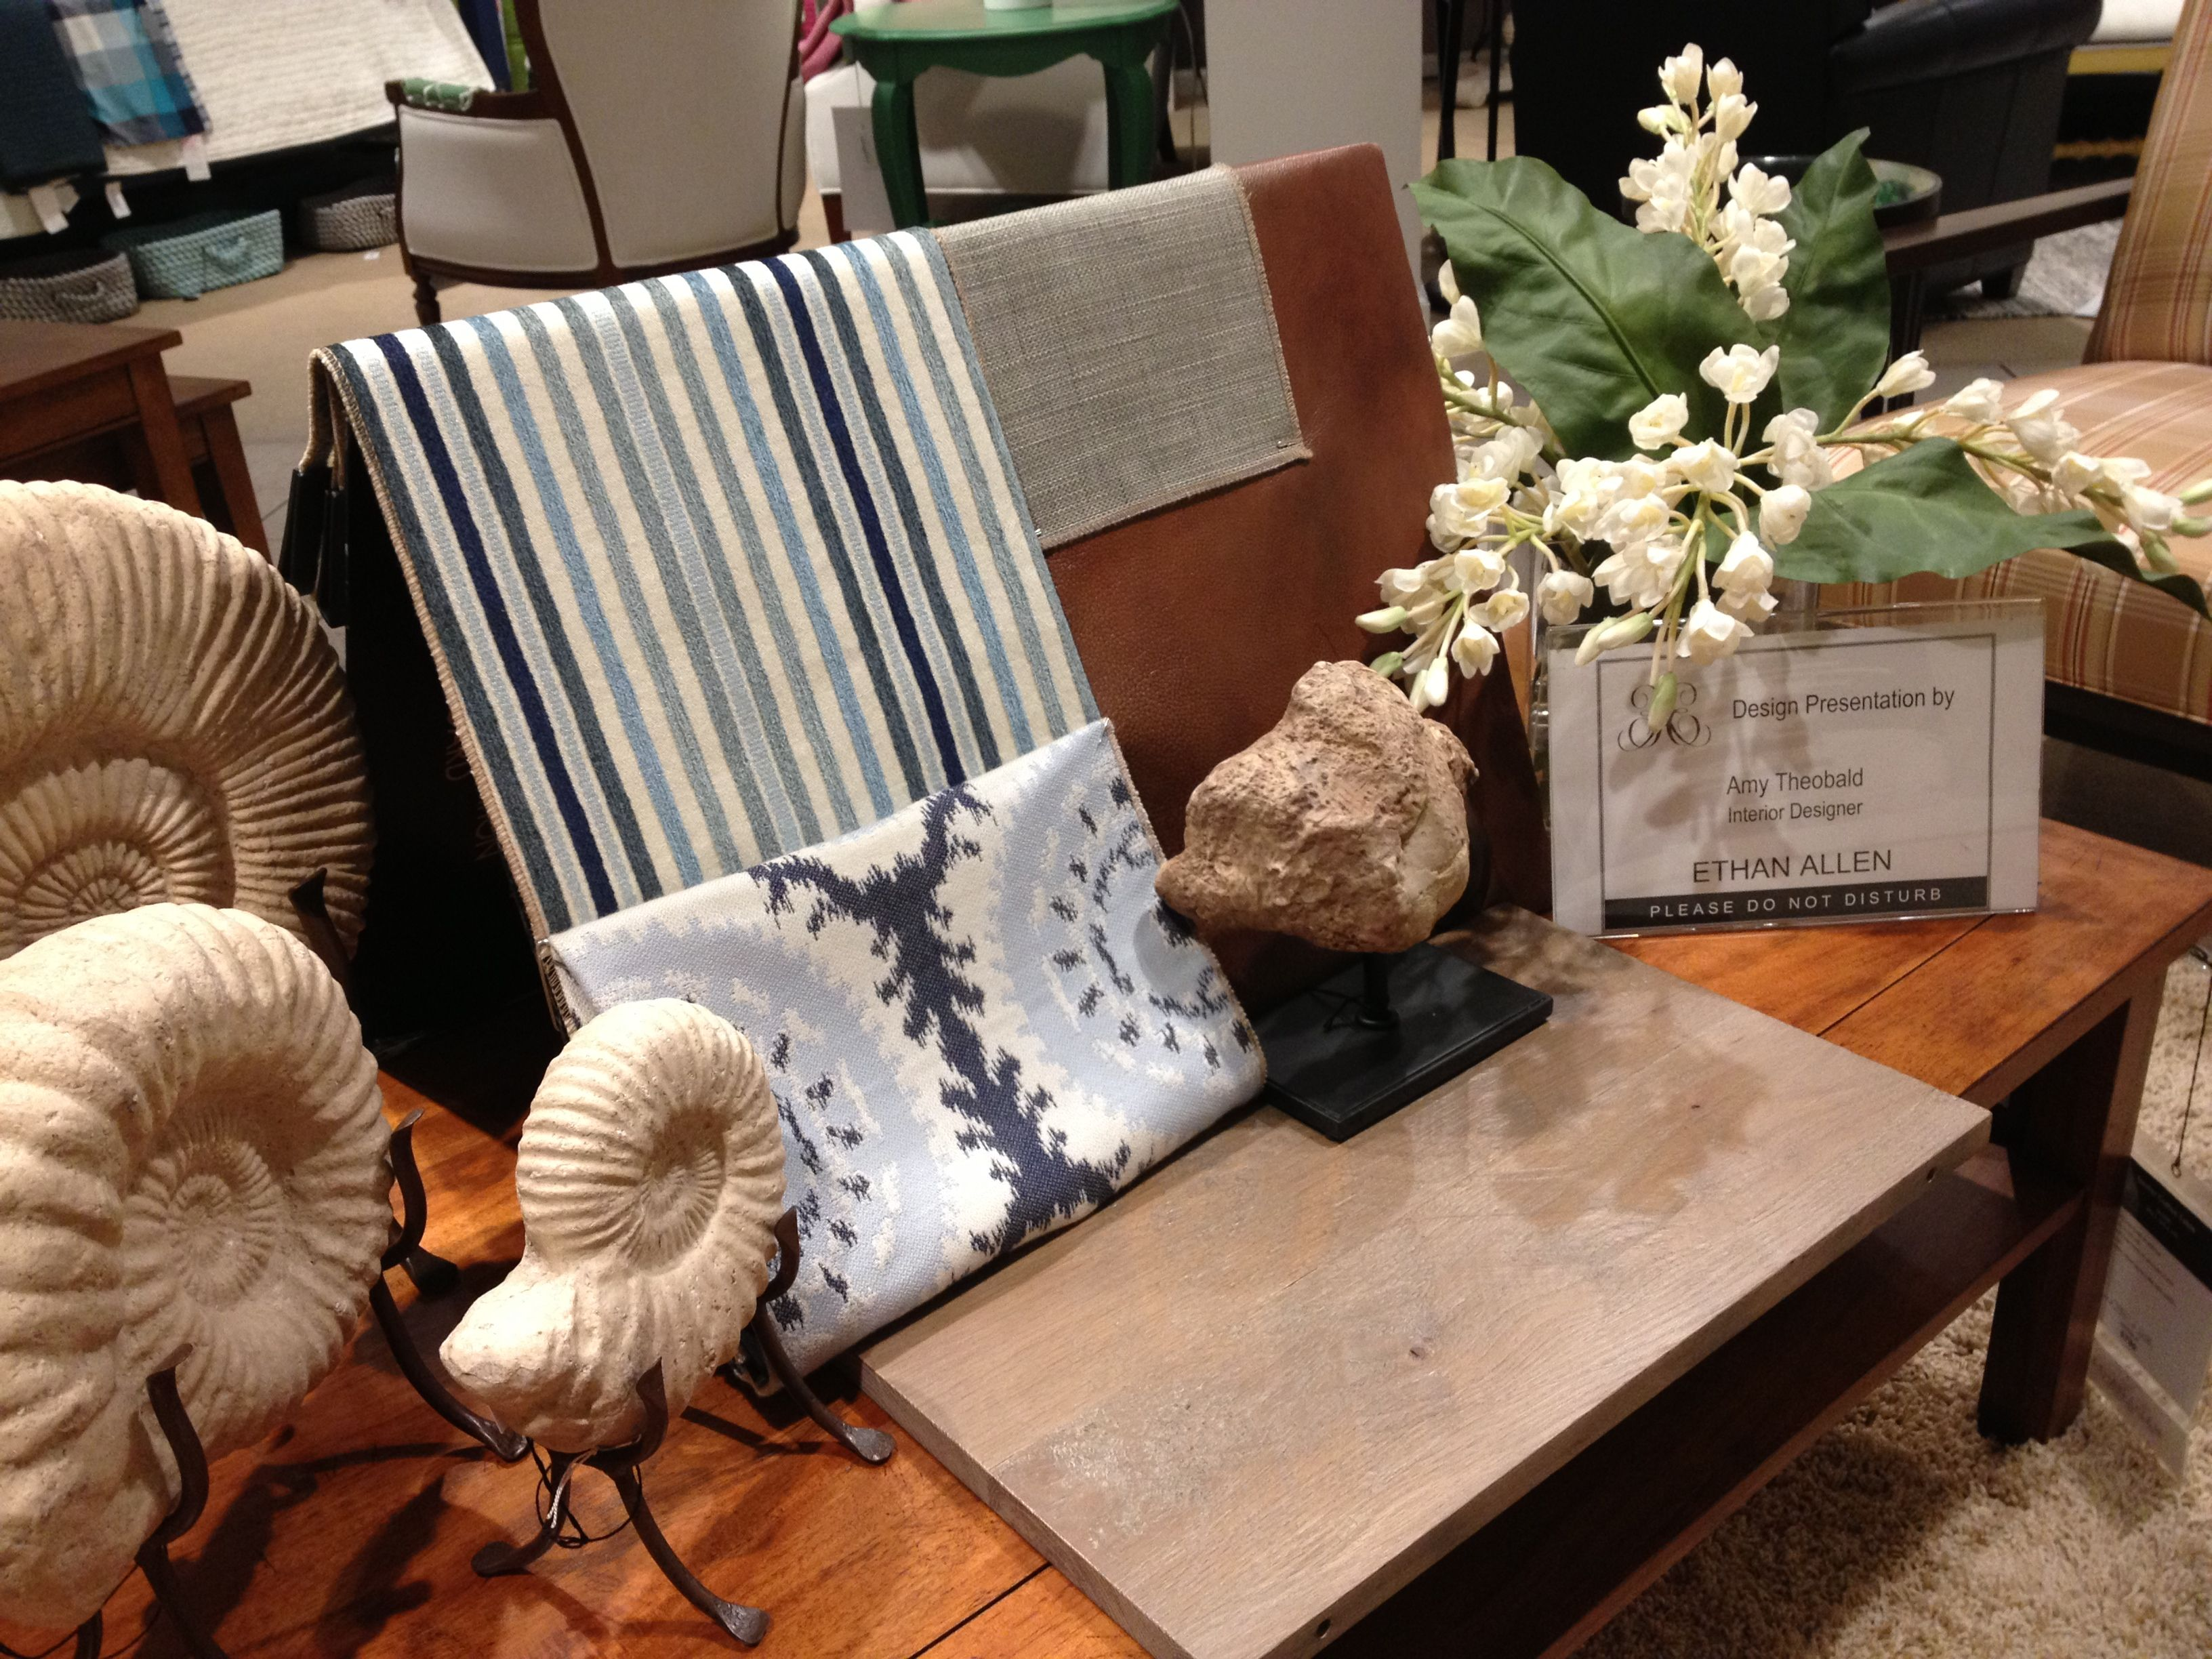 Client presentation rustic beach look Designed by Ethan Allen